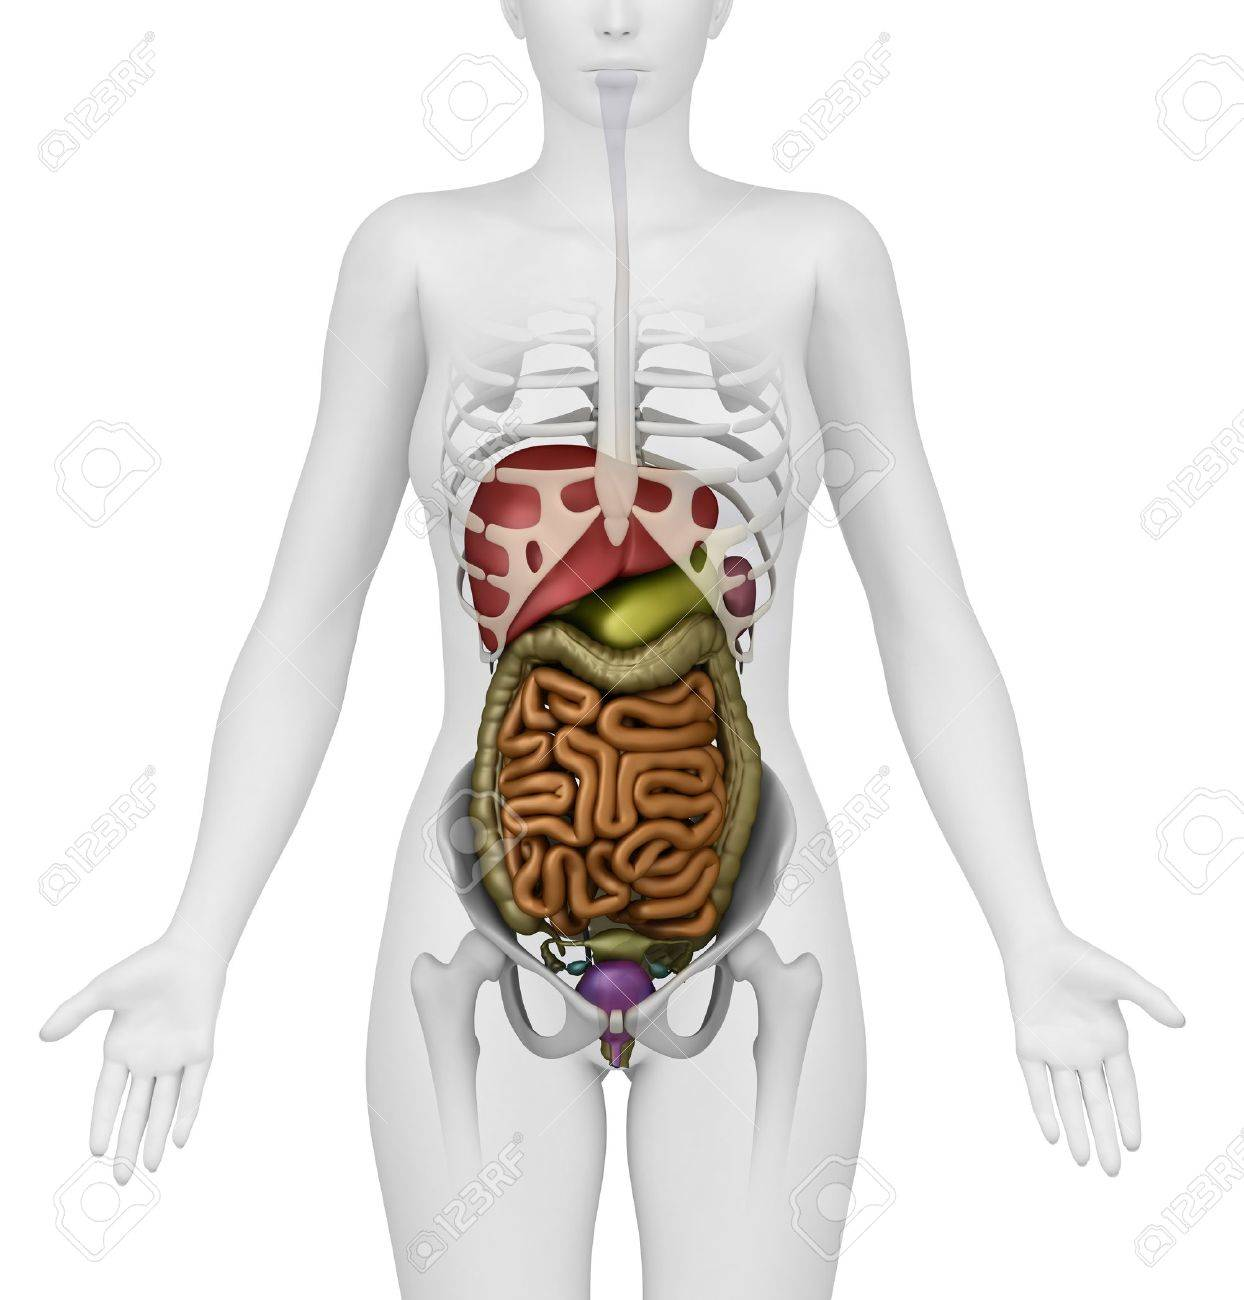 Anatomy of abdomen stock photo picture and royalty free image anatomy of abdomen stock photo 9779116 ccuart Image collections